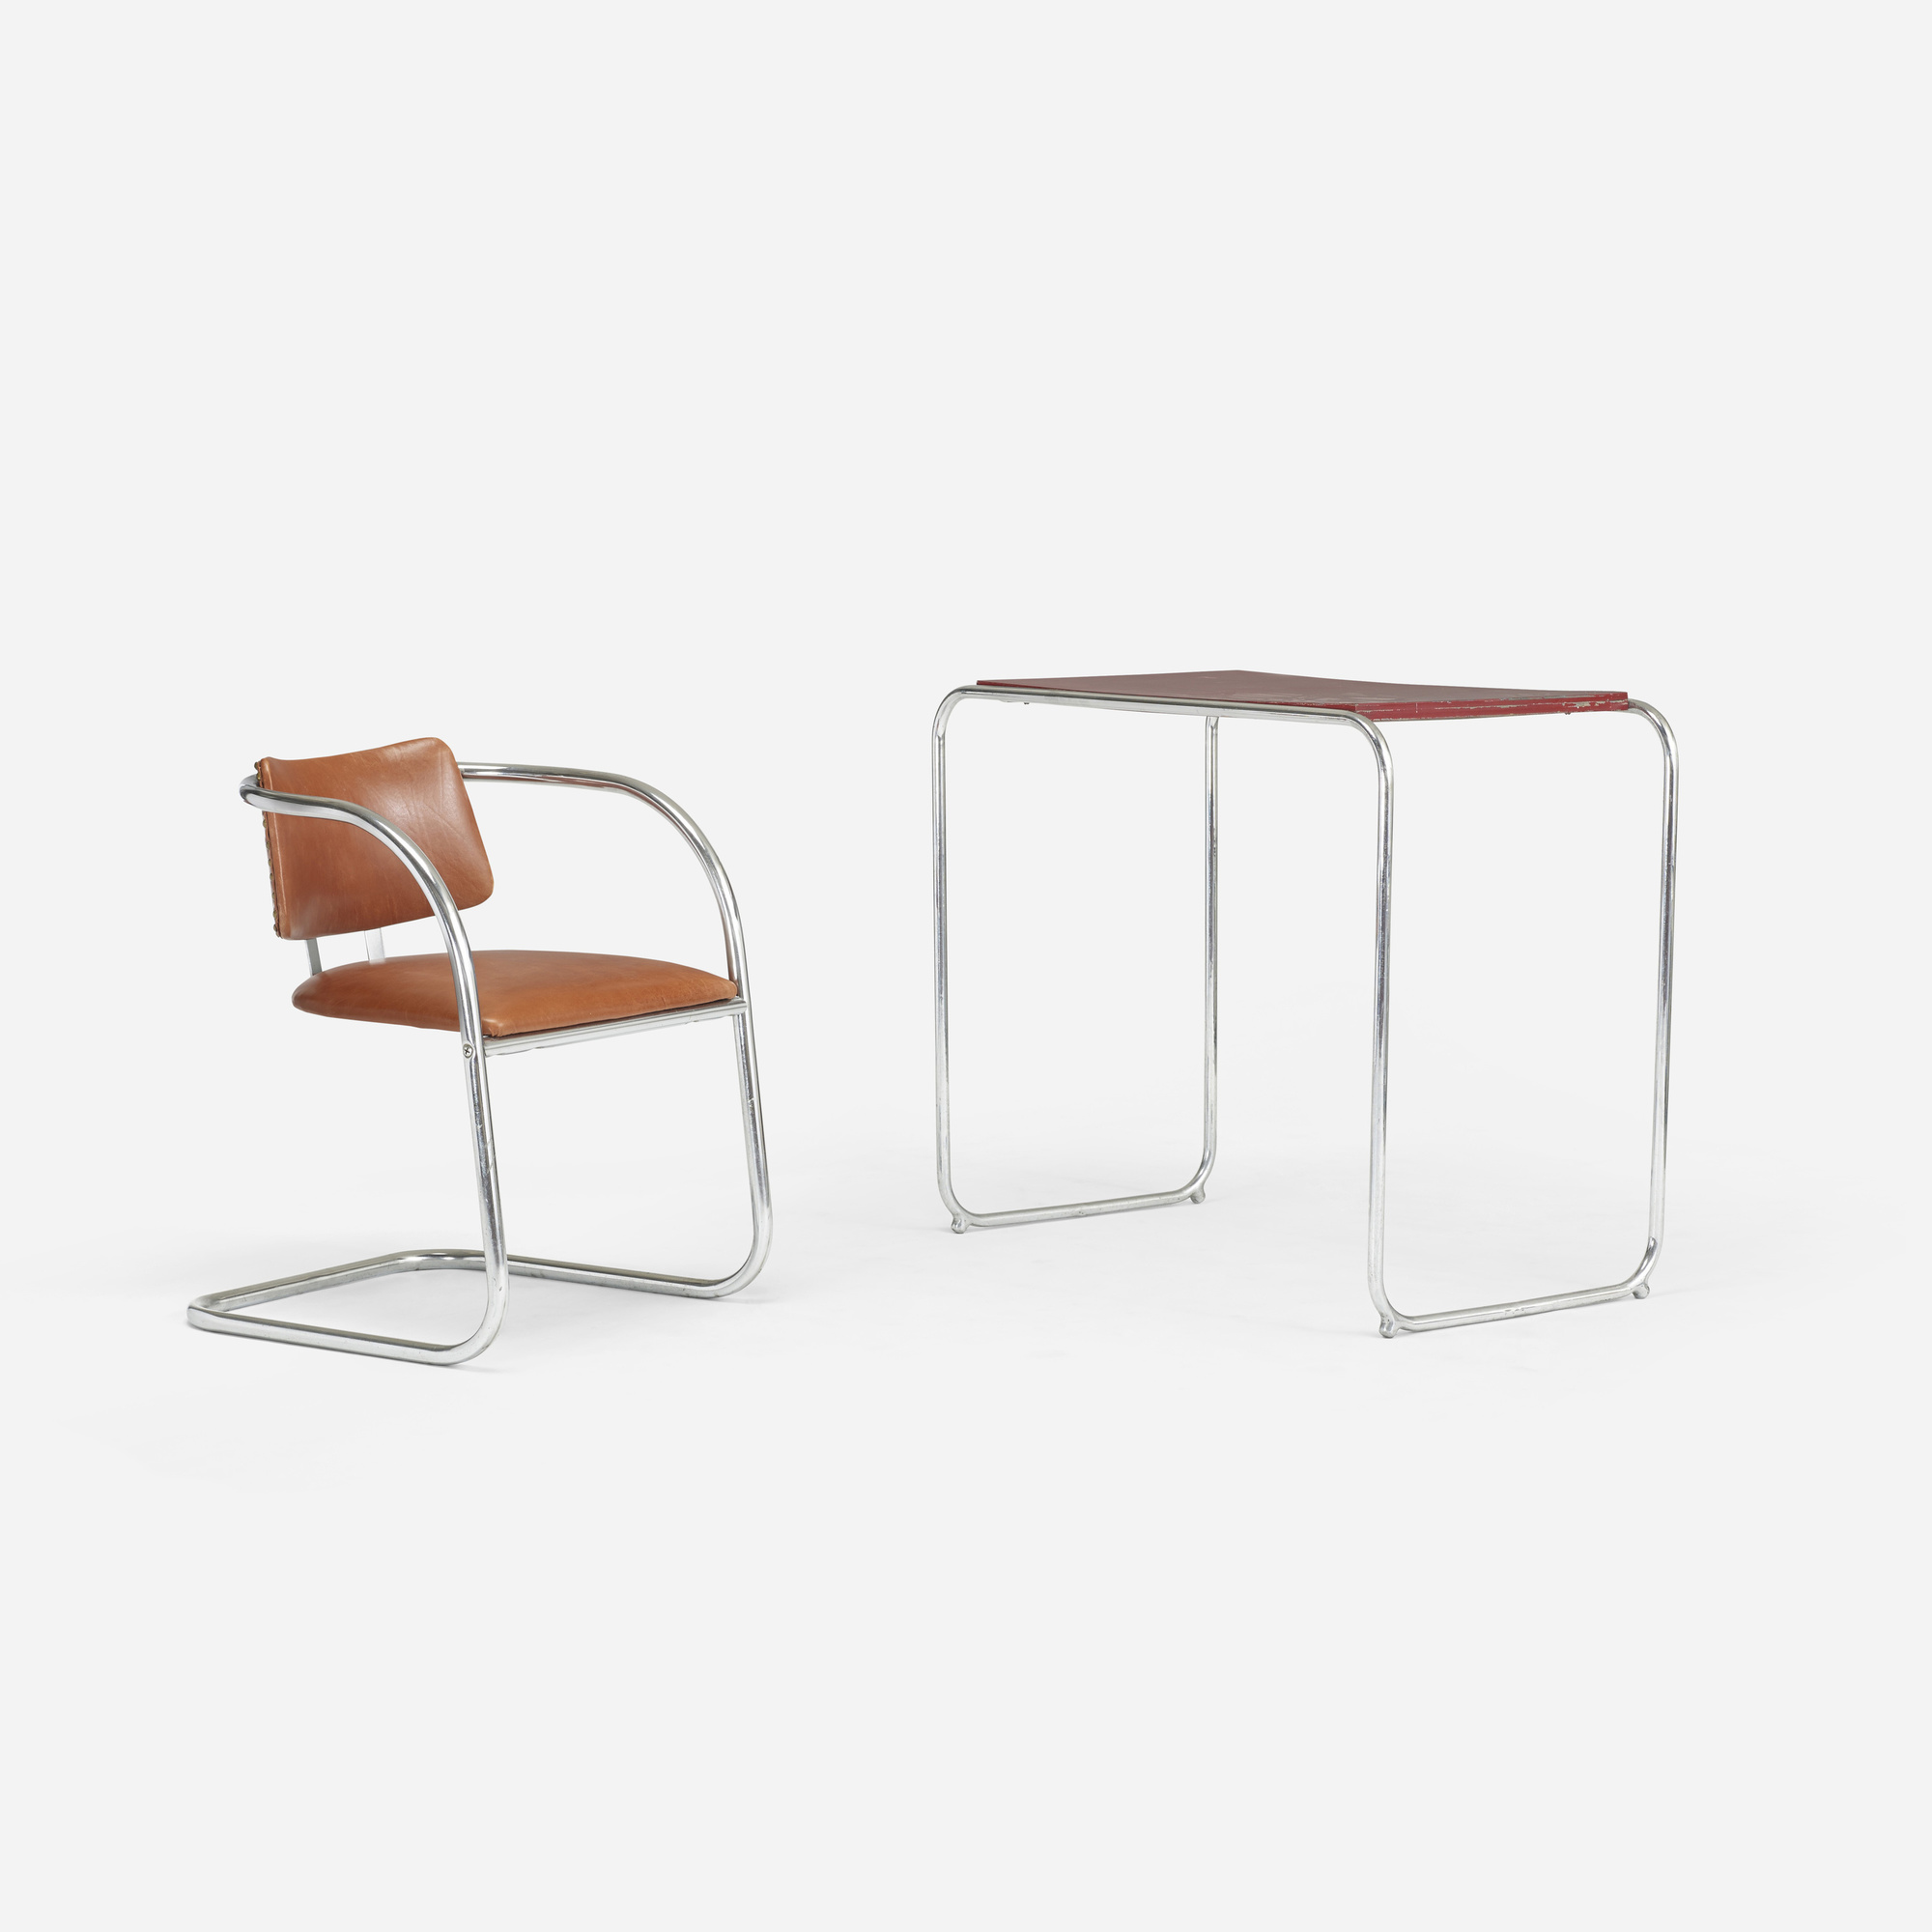 514: Lloyd Manufacturing Company / desk and chair (1 of 2)